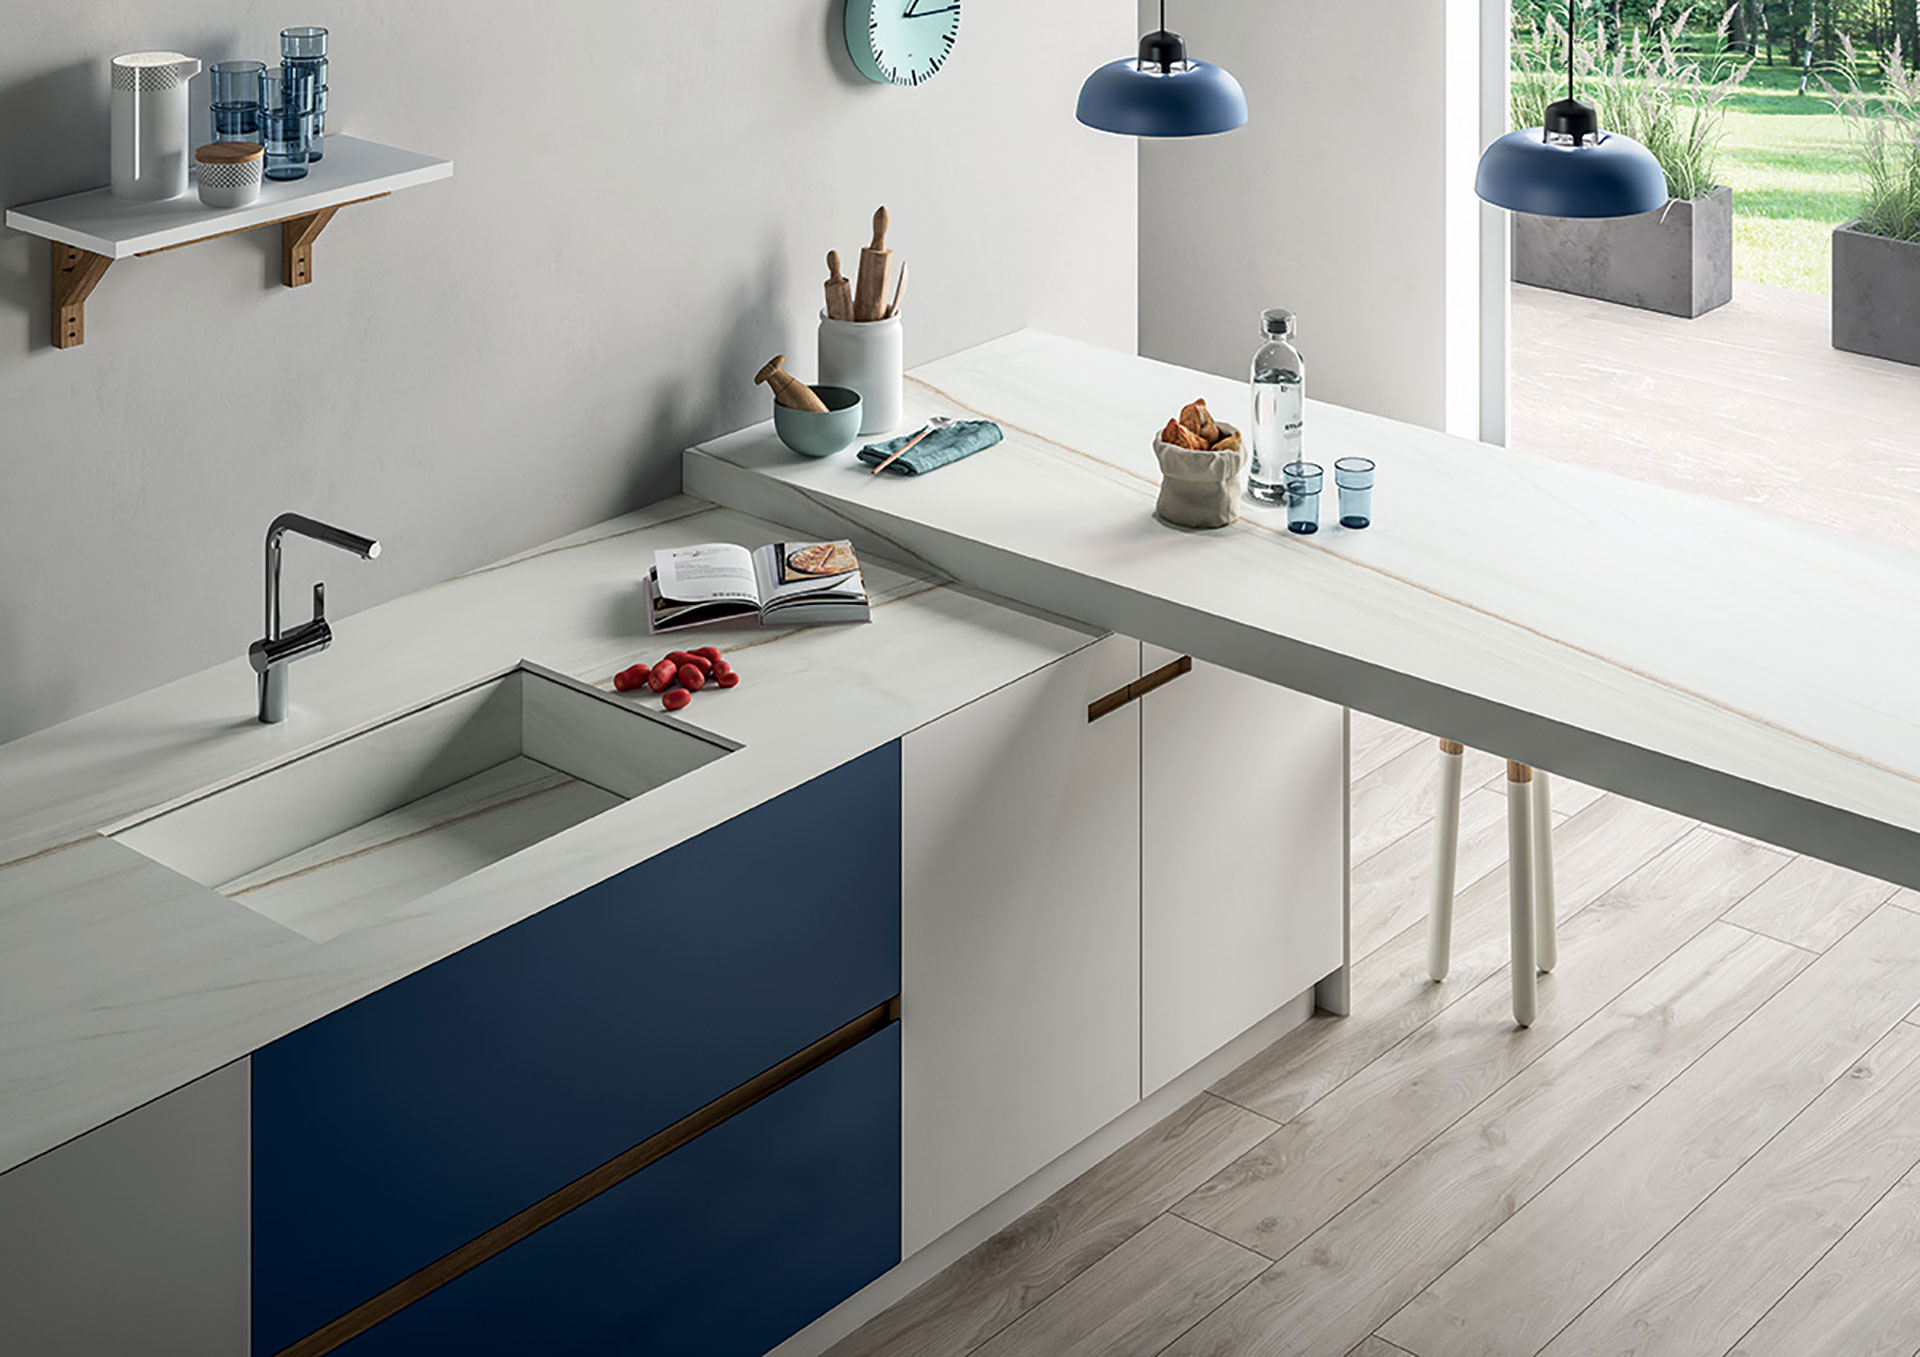 Piano Cucina Gres Opinioni sapienstone: top quality porcelain becomes a kitchen